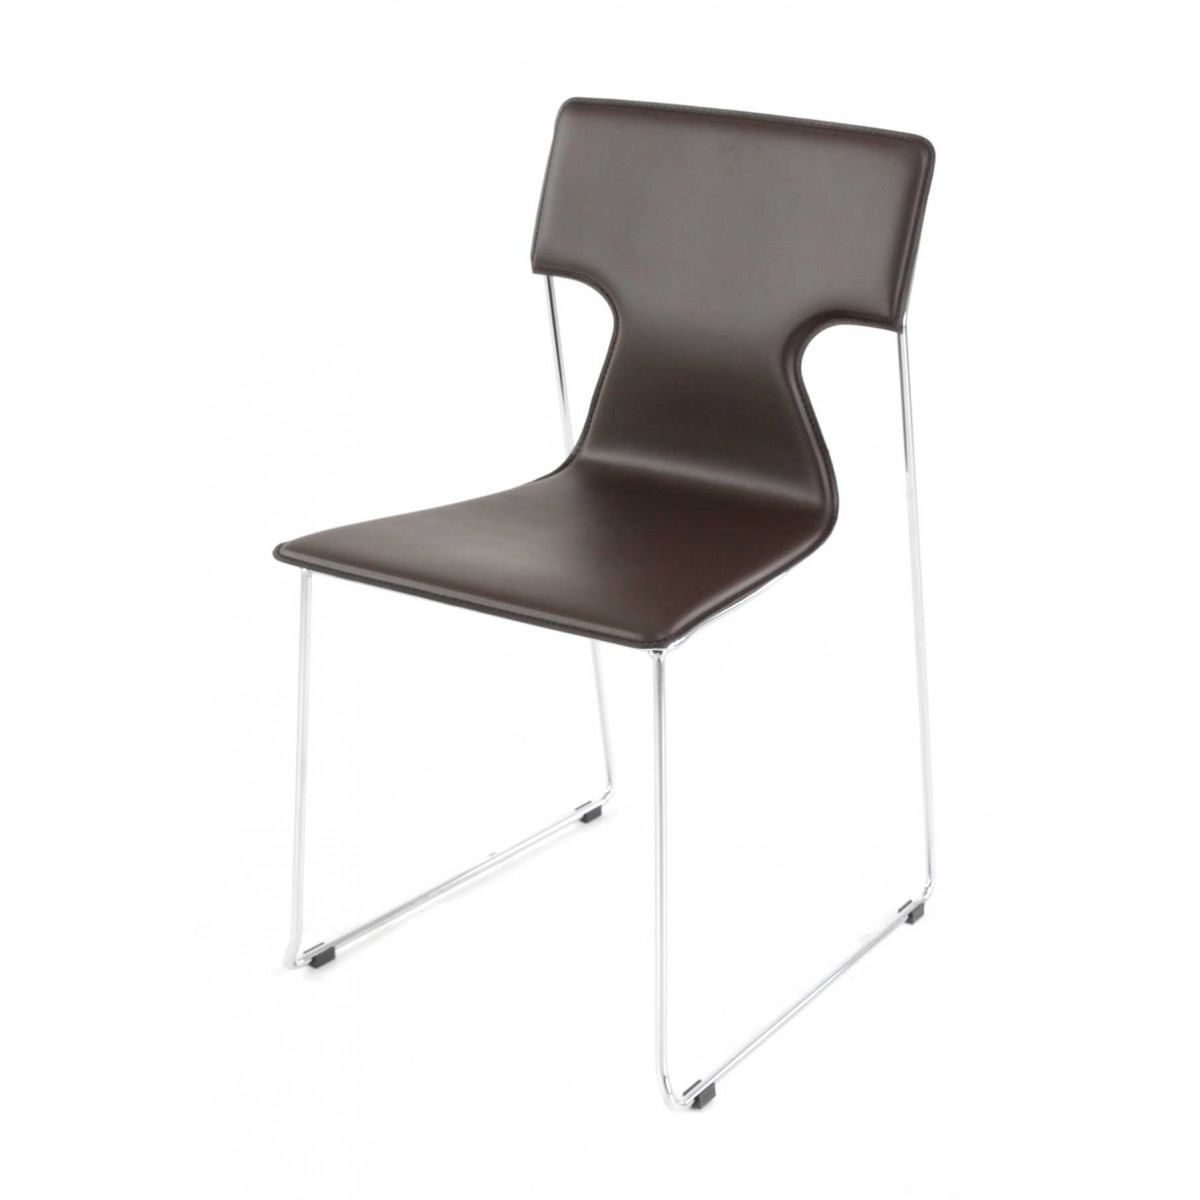 #413733 Related For Chaise Design Pour Salle A Manger Pictures To  4265 chaise design pour salle a manger 1200x1200 px @ aertt.com